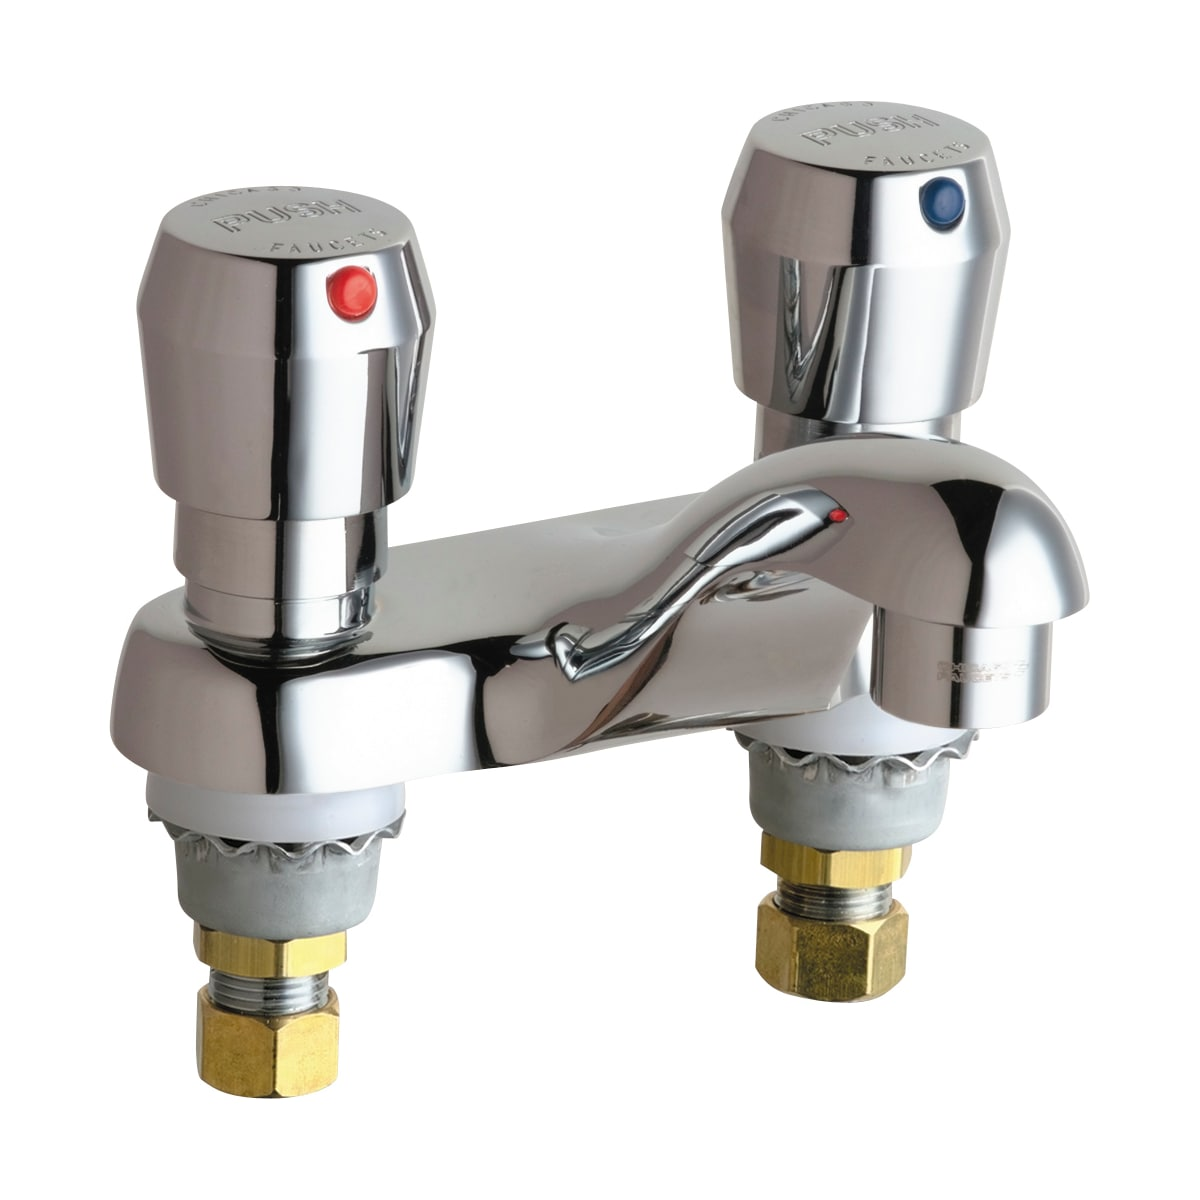 "Chicago Faucets Centerset Bathroom Faucet with 4"" Faucet Centers and Push Button Handles"